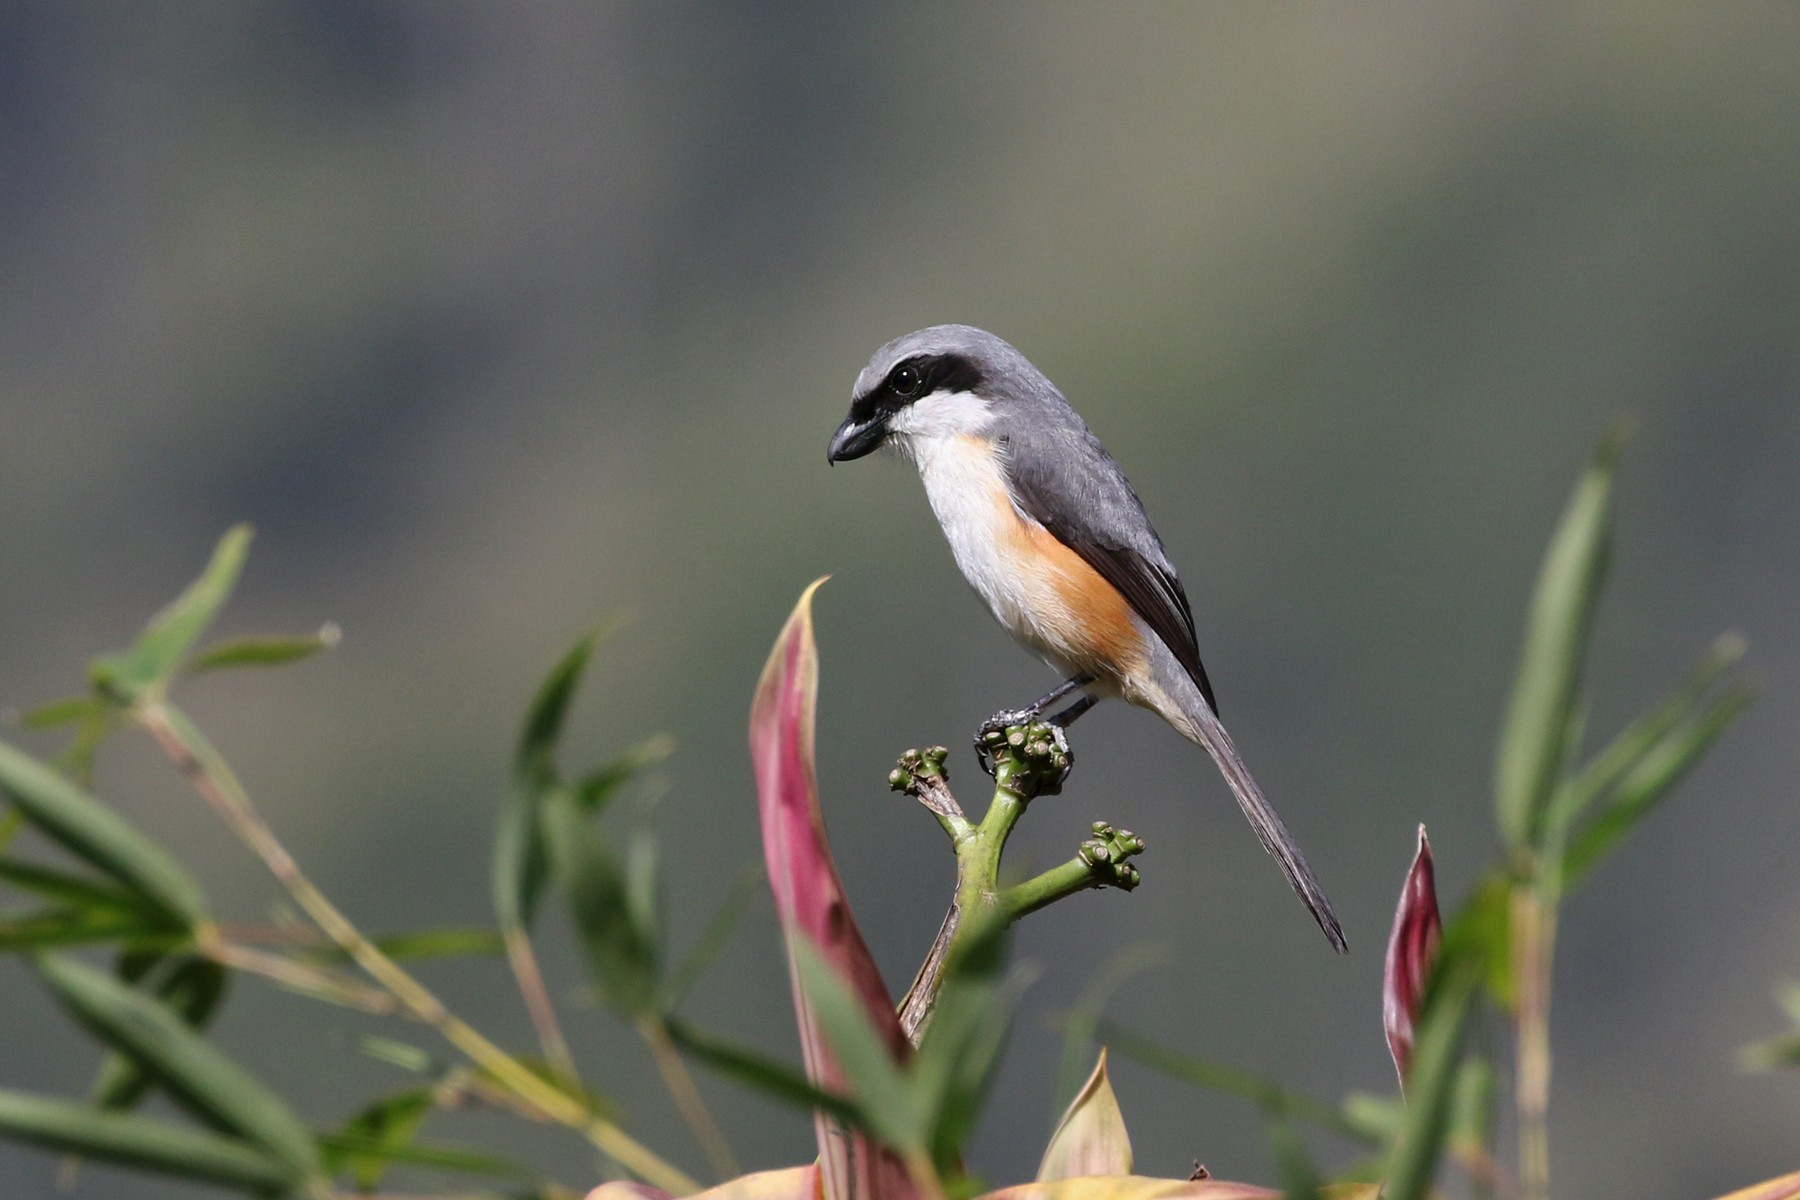 Gray-capped Shrike - Charley Hesse TROPICAL BIRDING